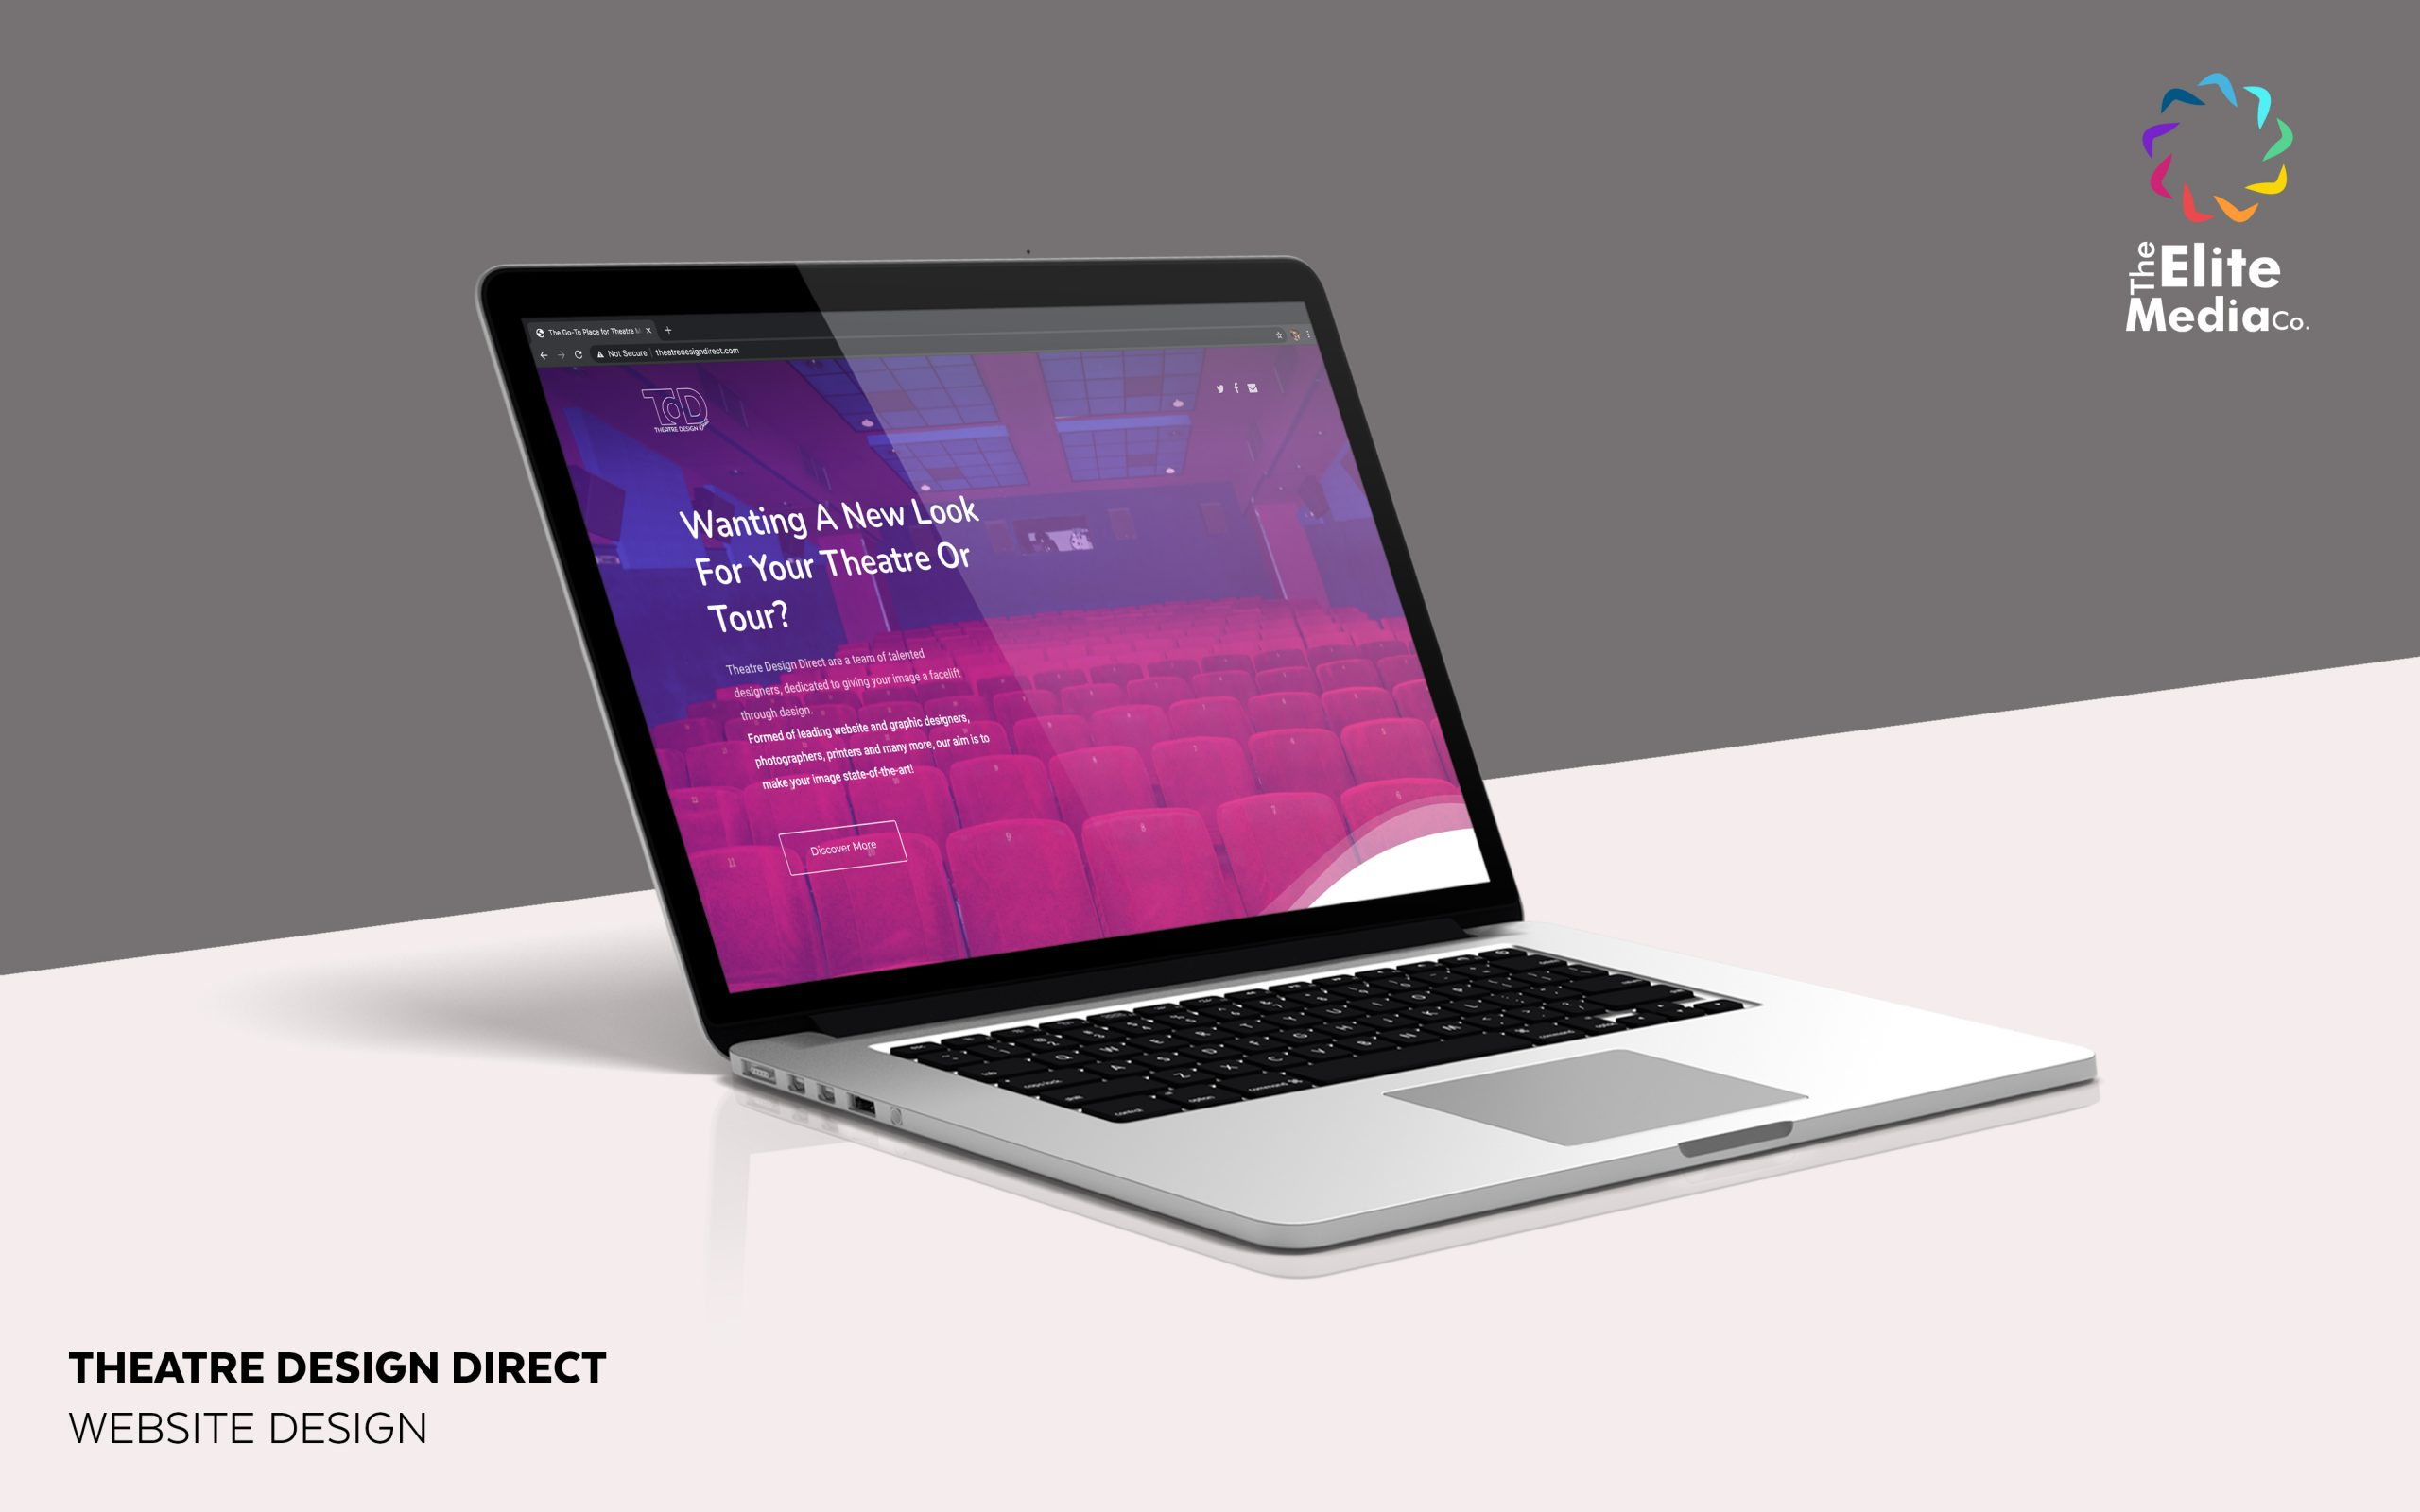 Theatre Design Direct – Website